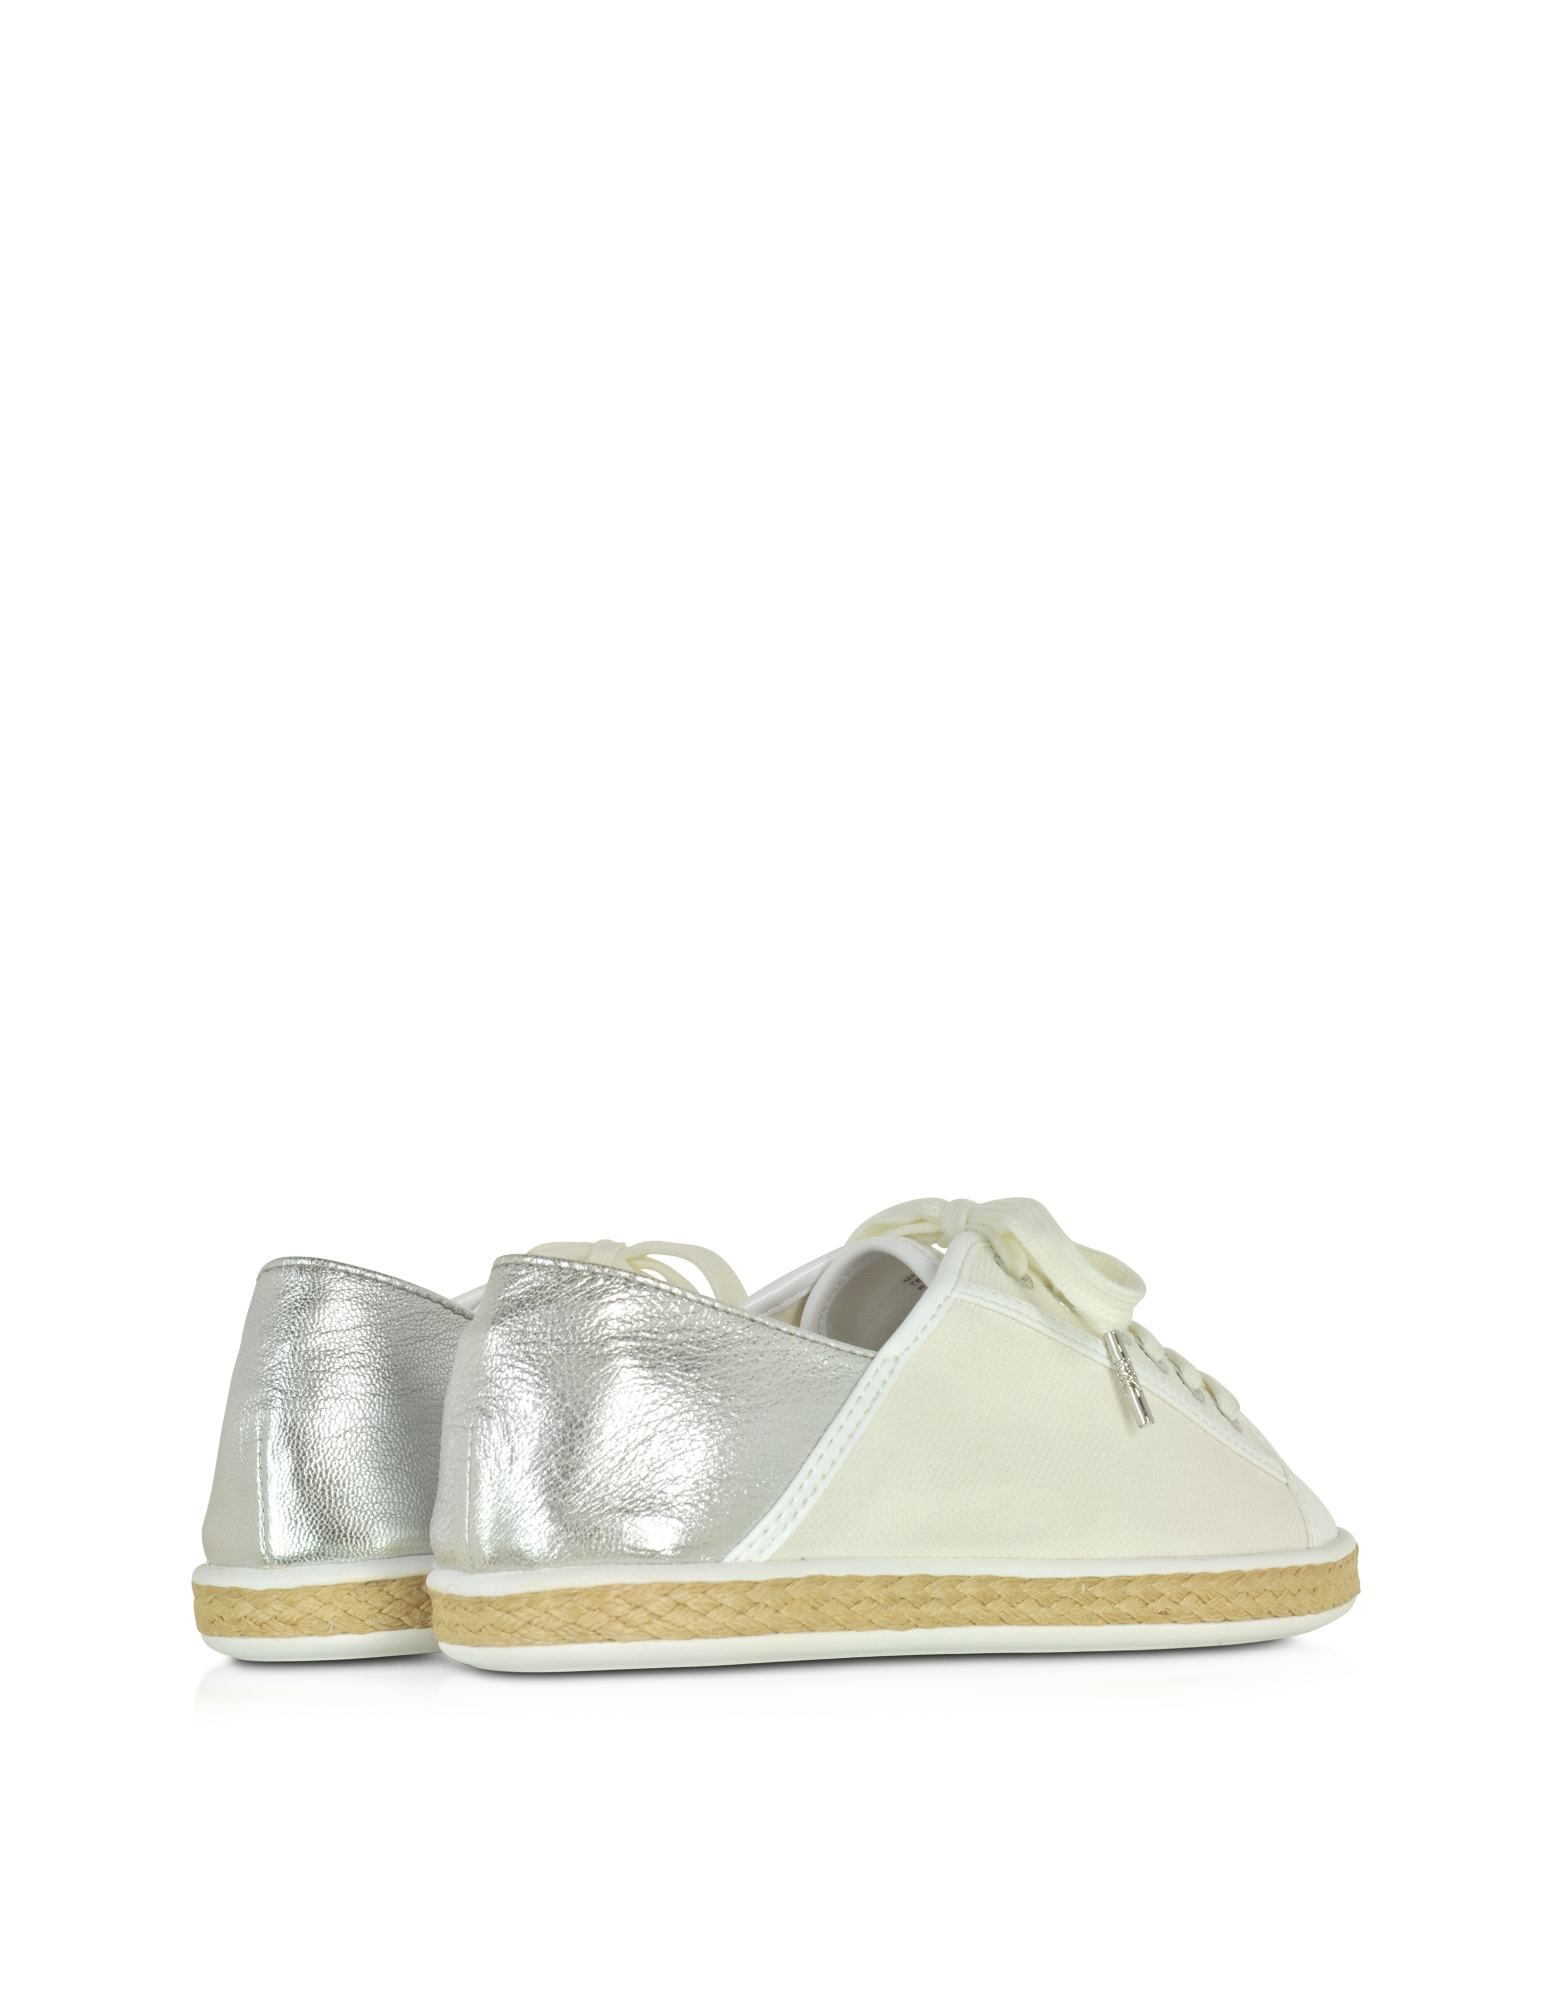 michael kors kristy silver canvas and leather sneaker in